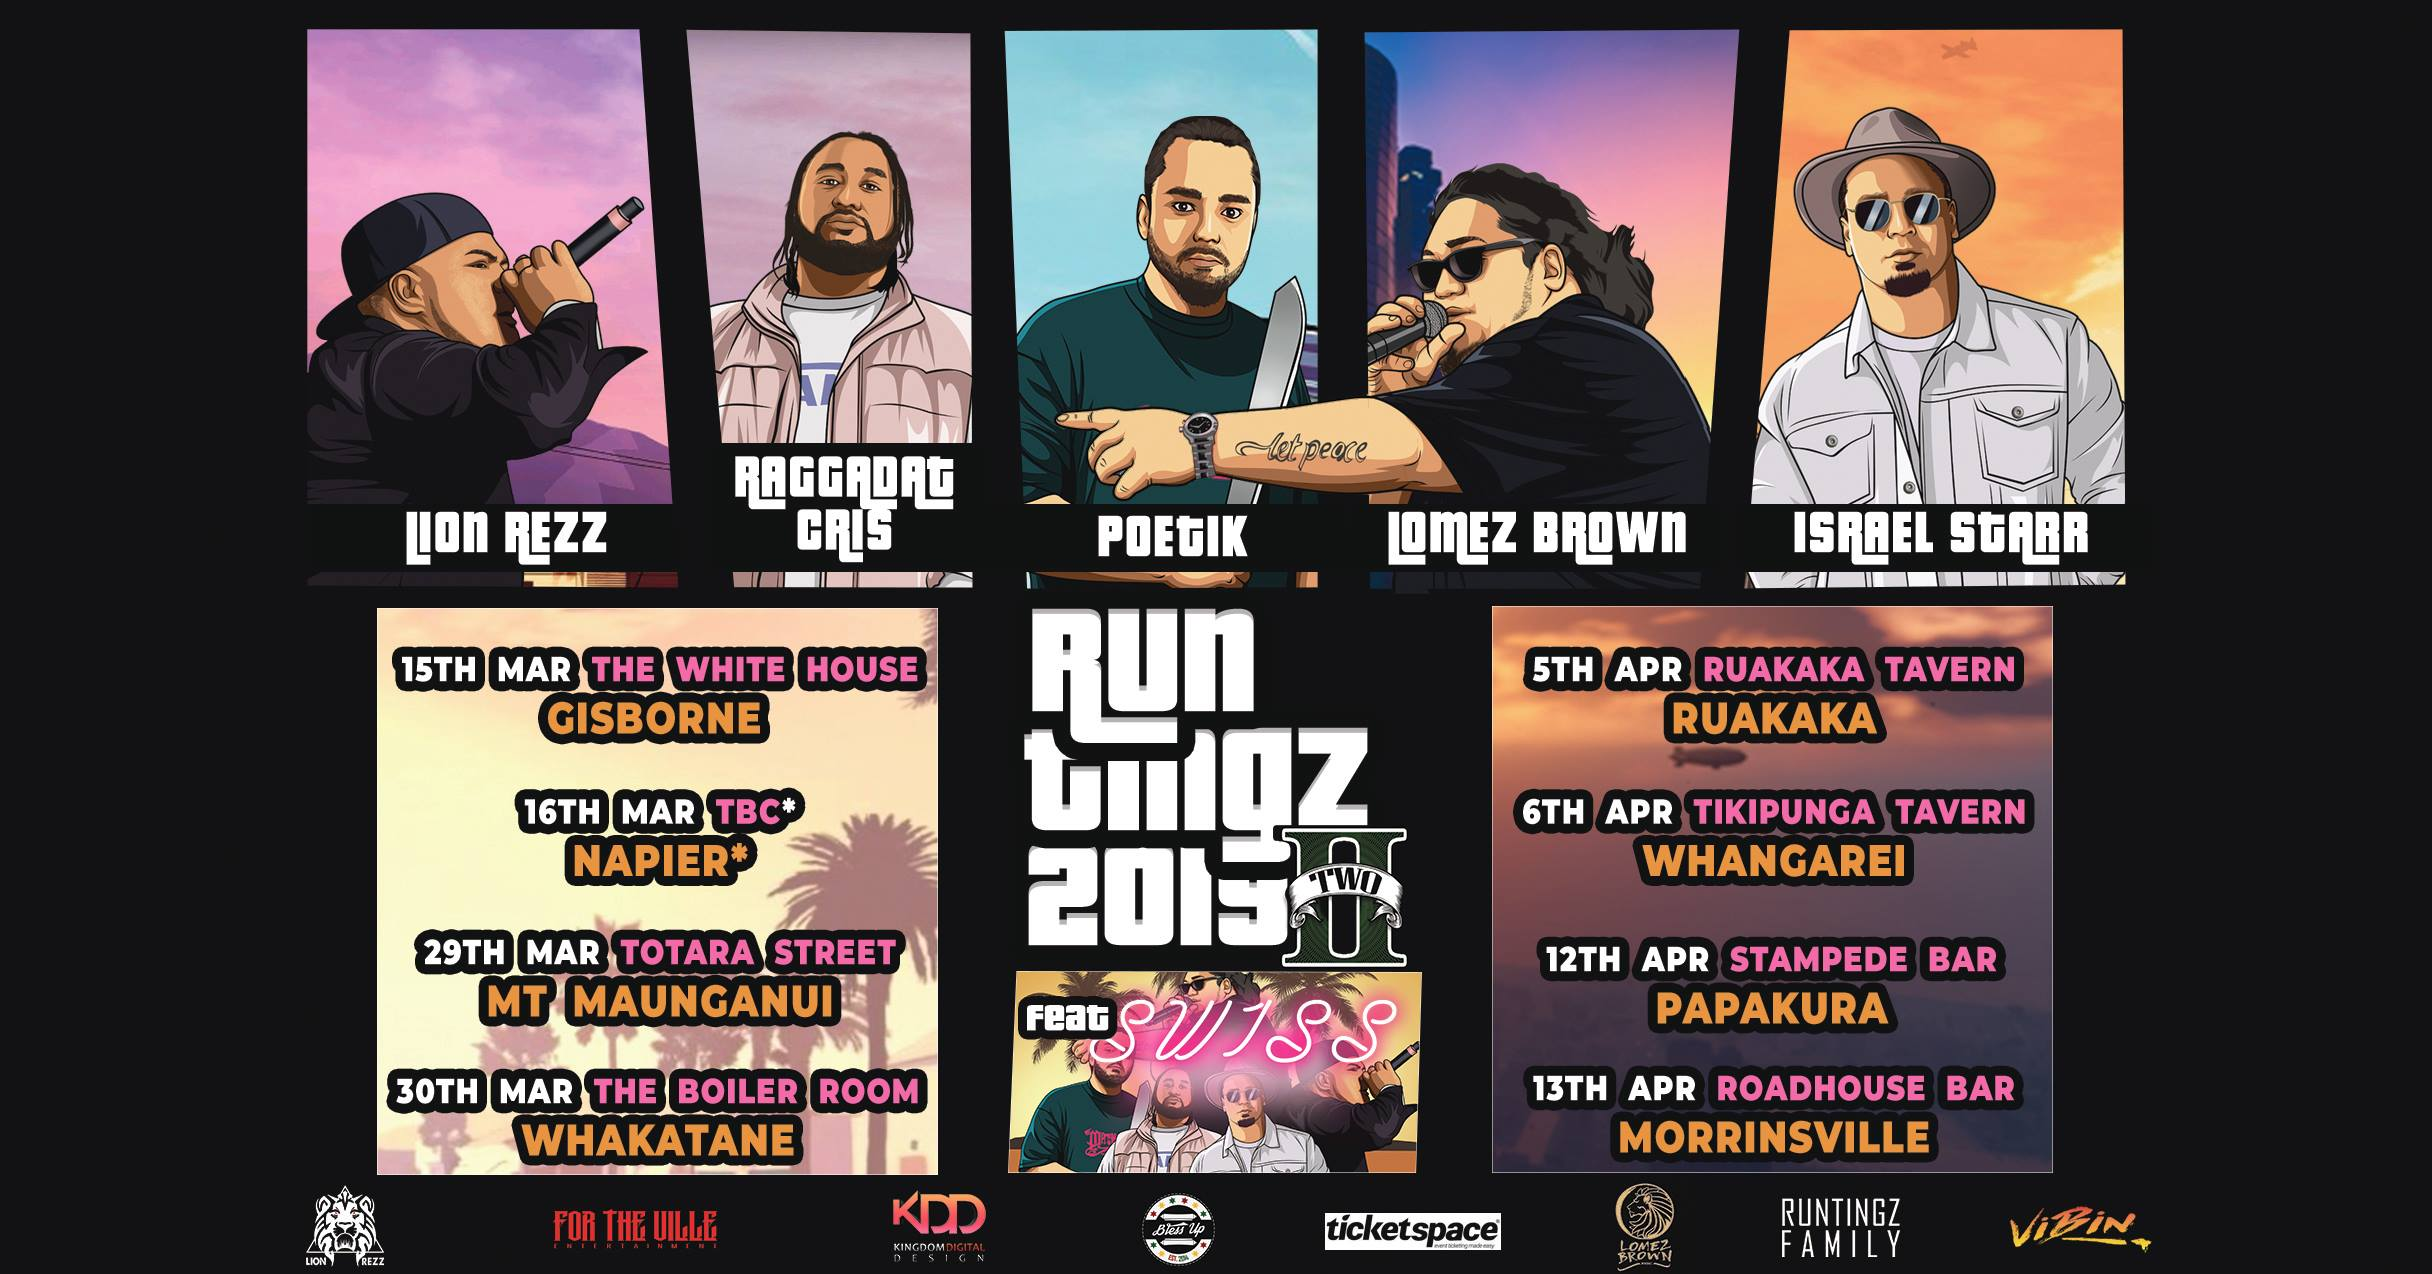 Tickets for RUNTINGZ 2019 NZ TOUR ft. SWISS - Morrinsville in Morrinsville from Ticketspace